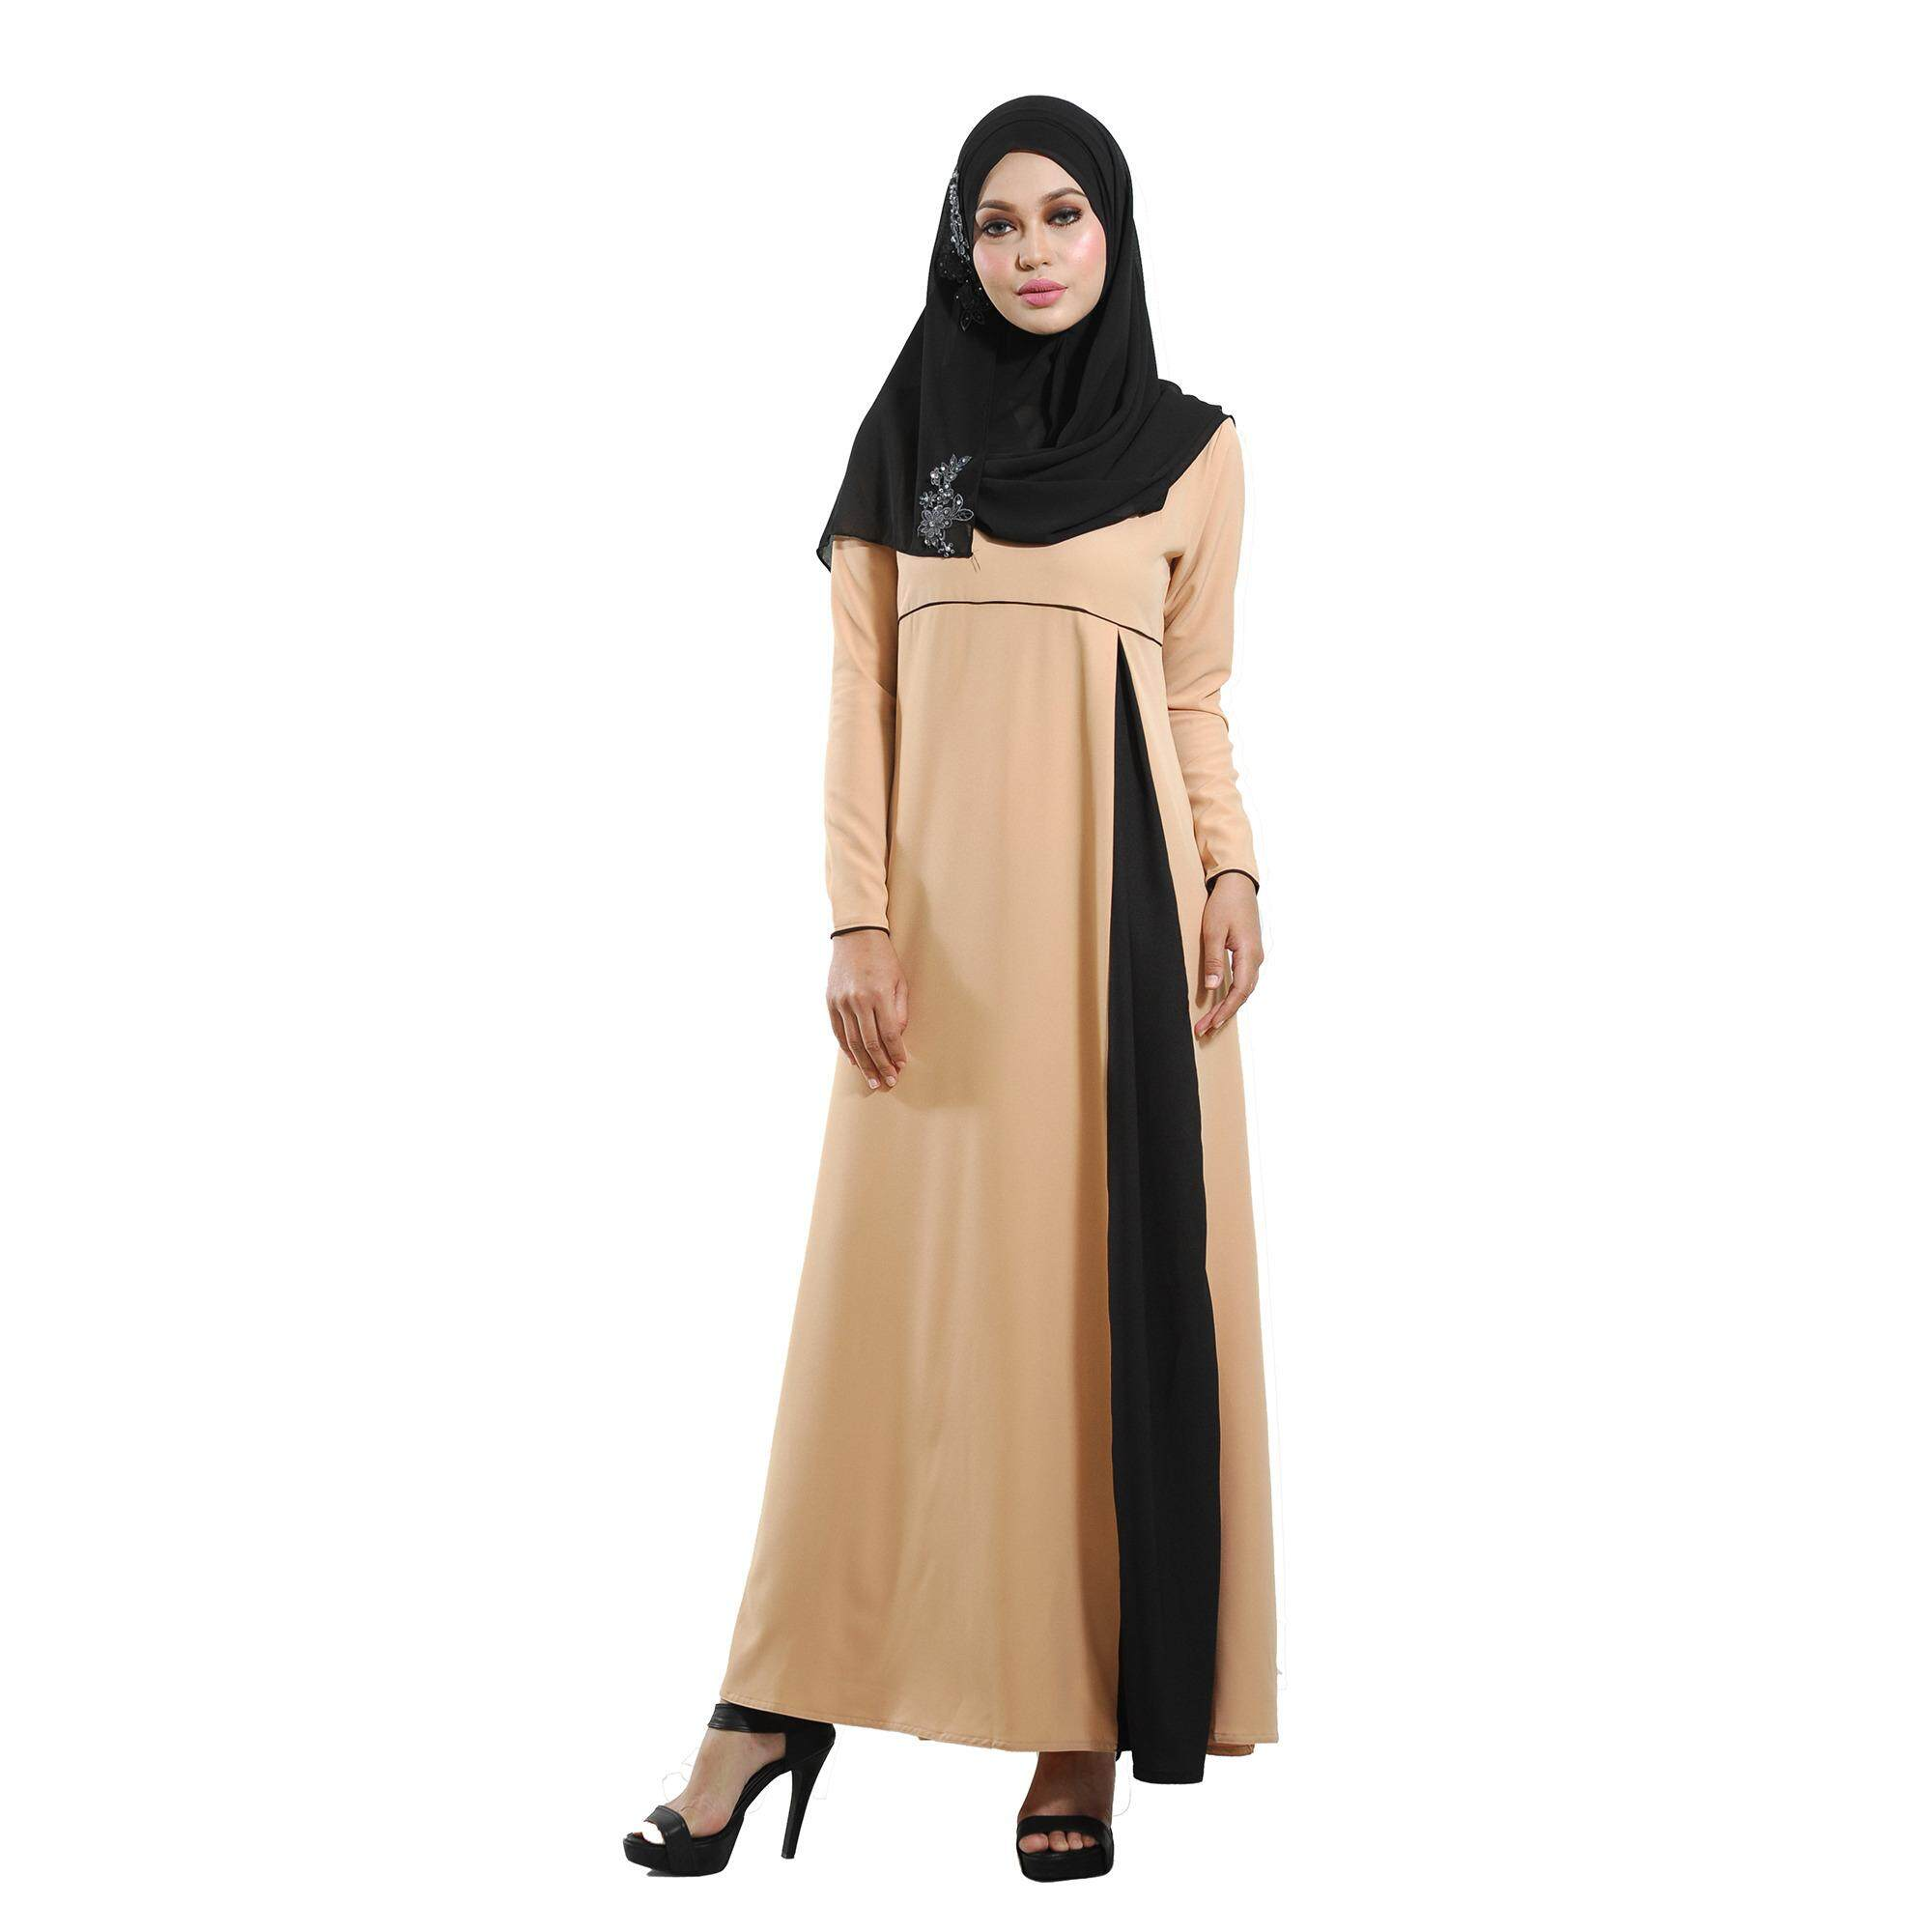 Muslimah Women Dresses With Best Price In Malaysia f2bf564a9e